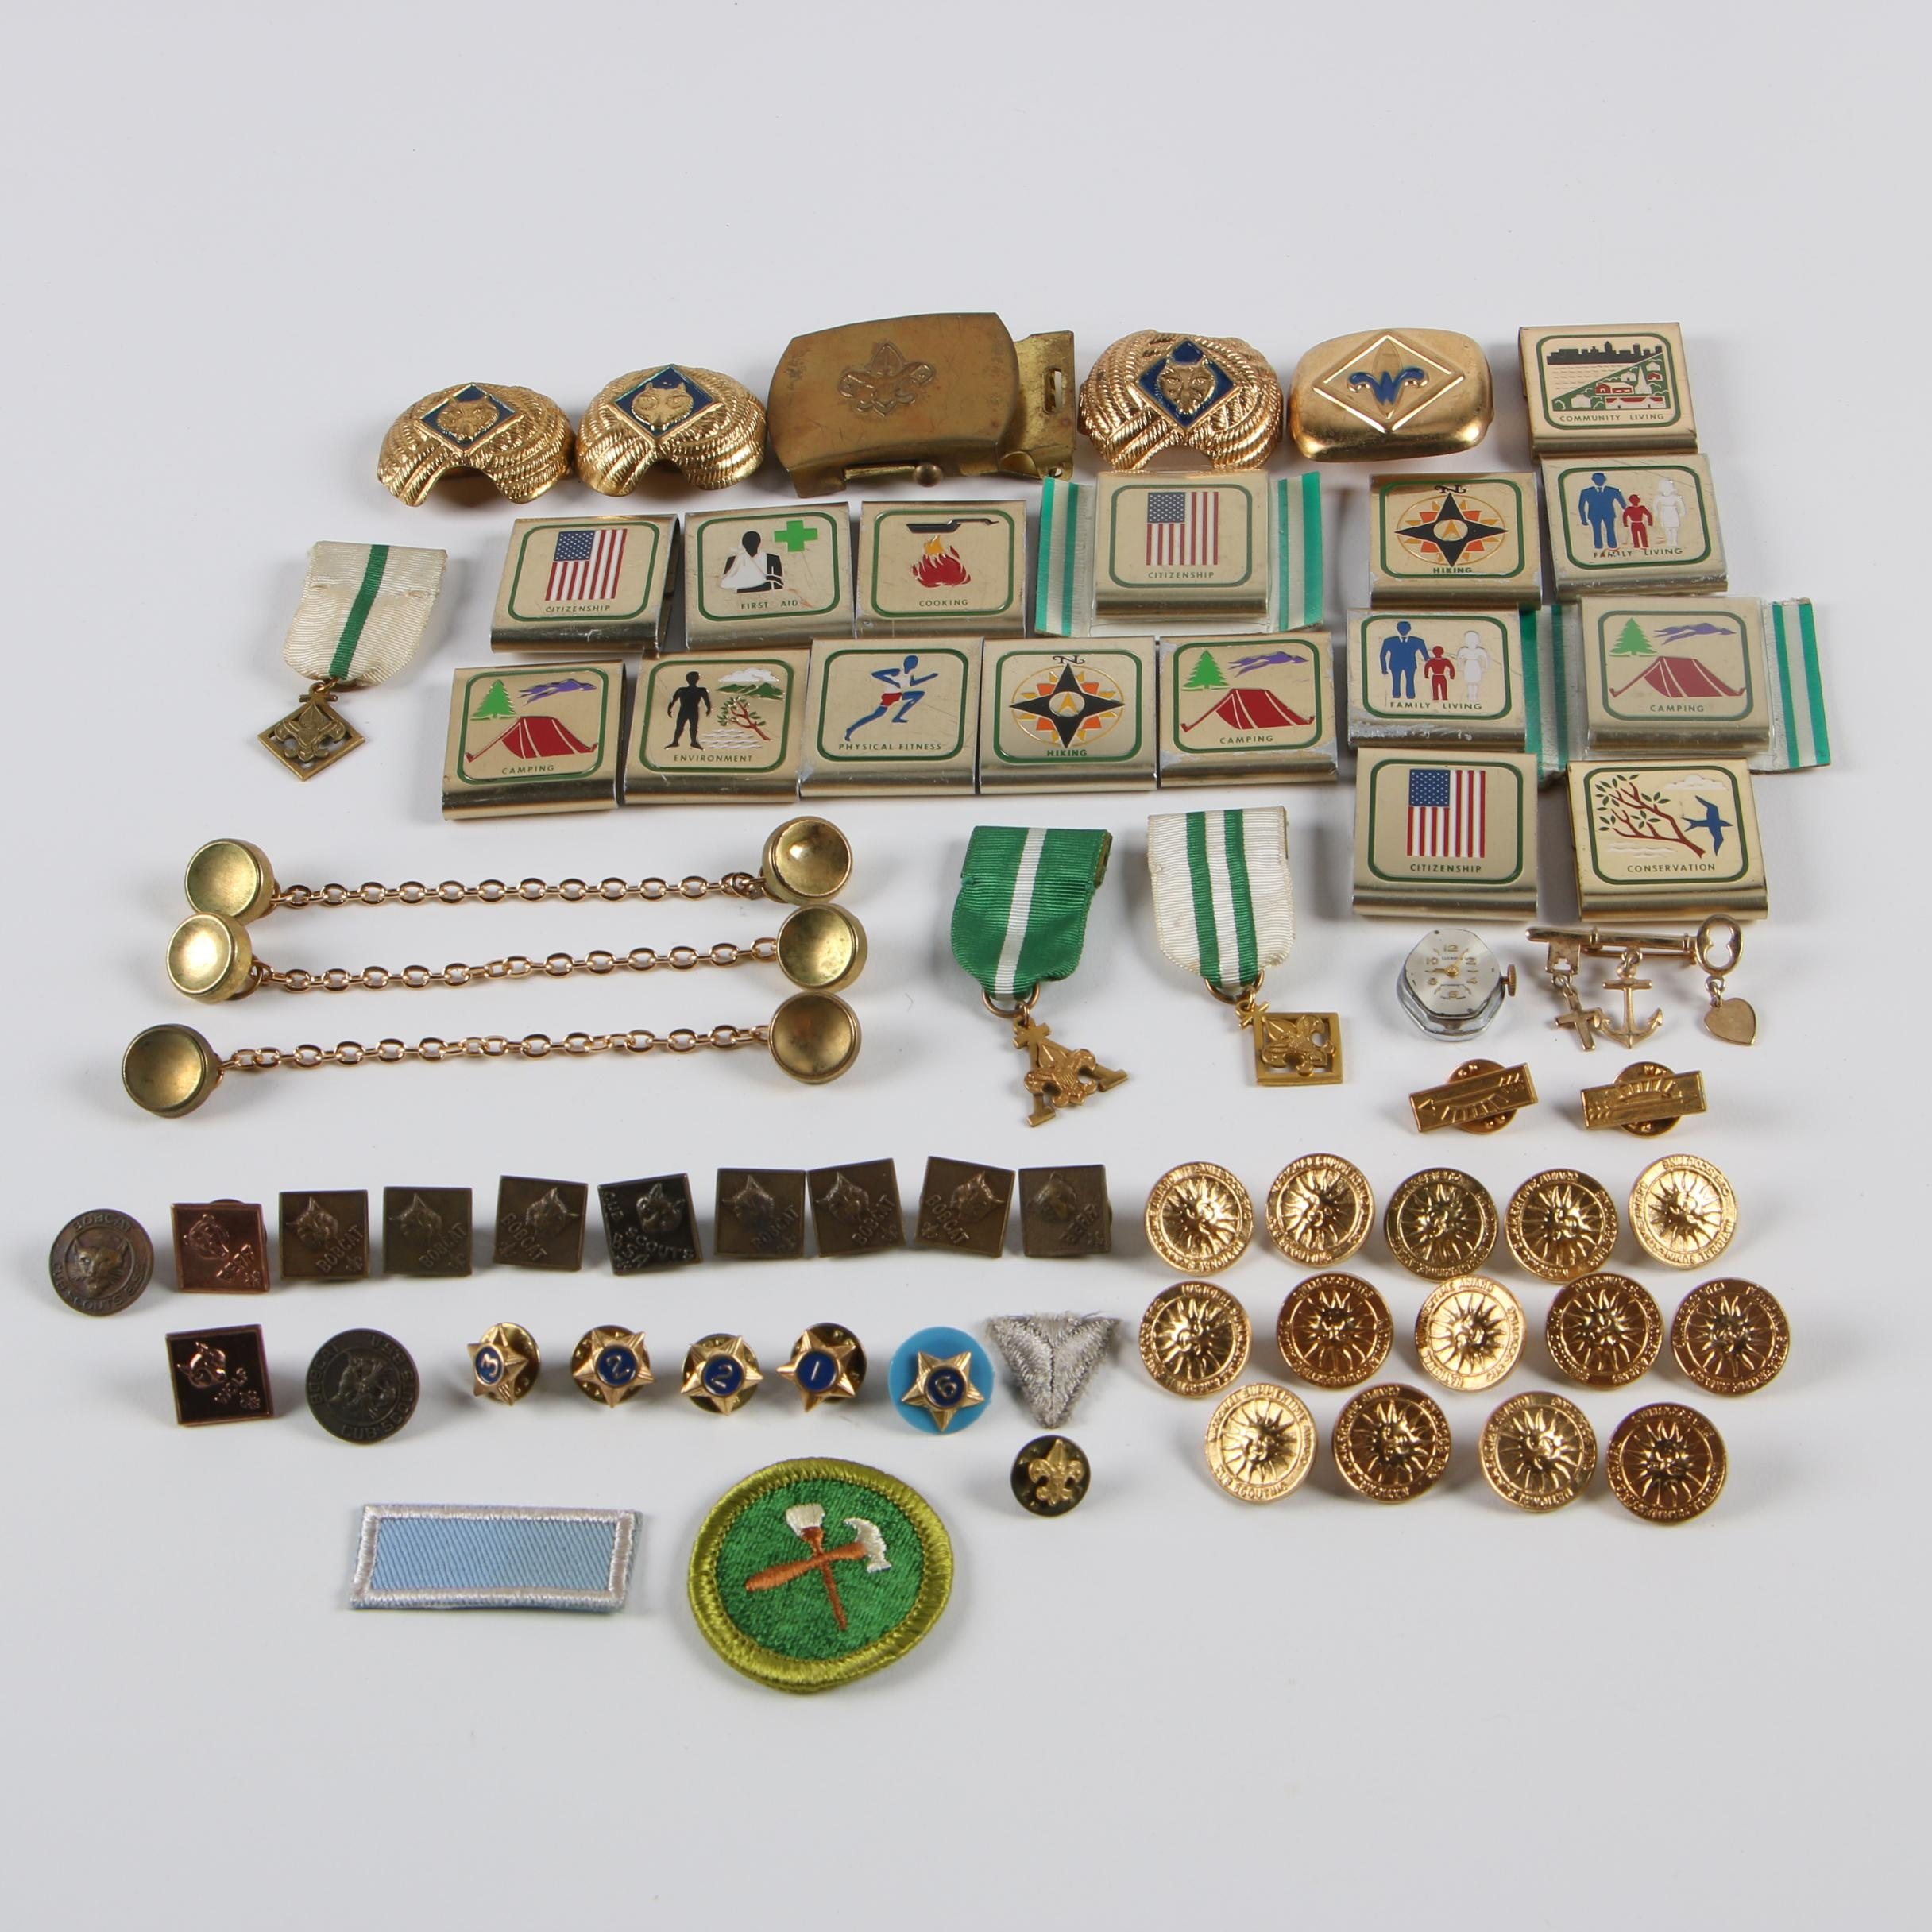 Boy Scouts of America Pins, Patches, Buckles, and More